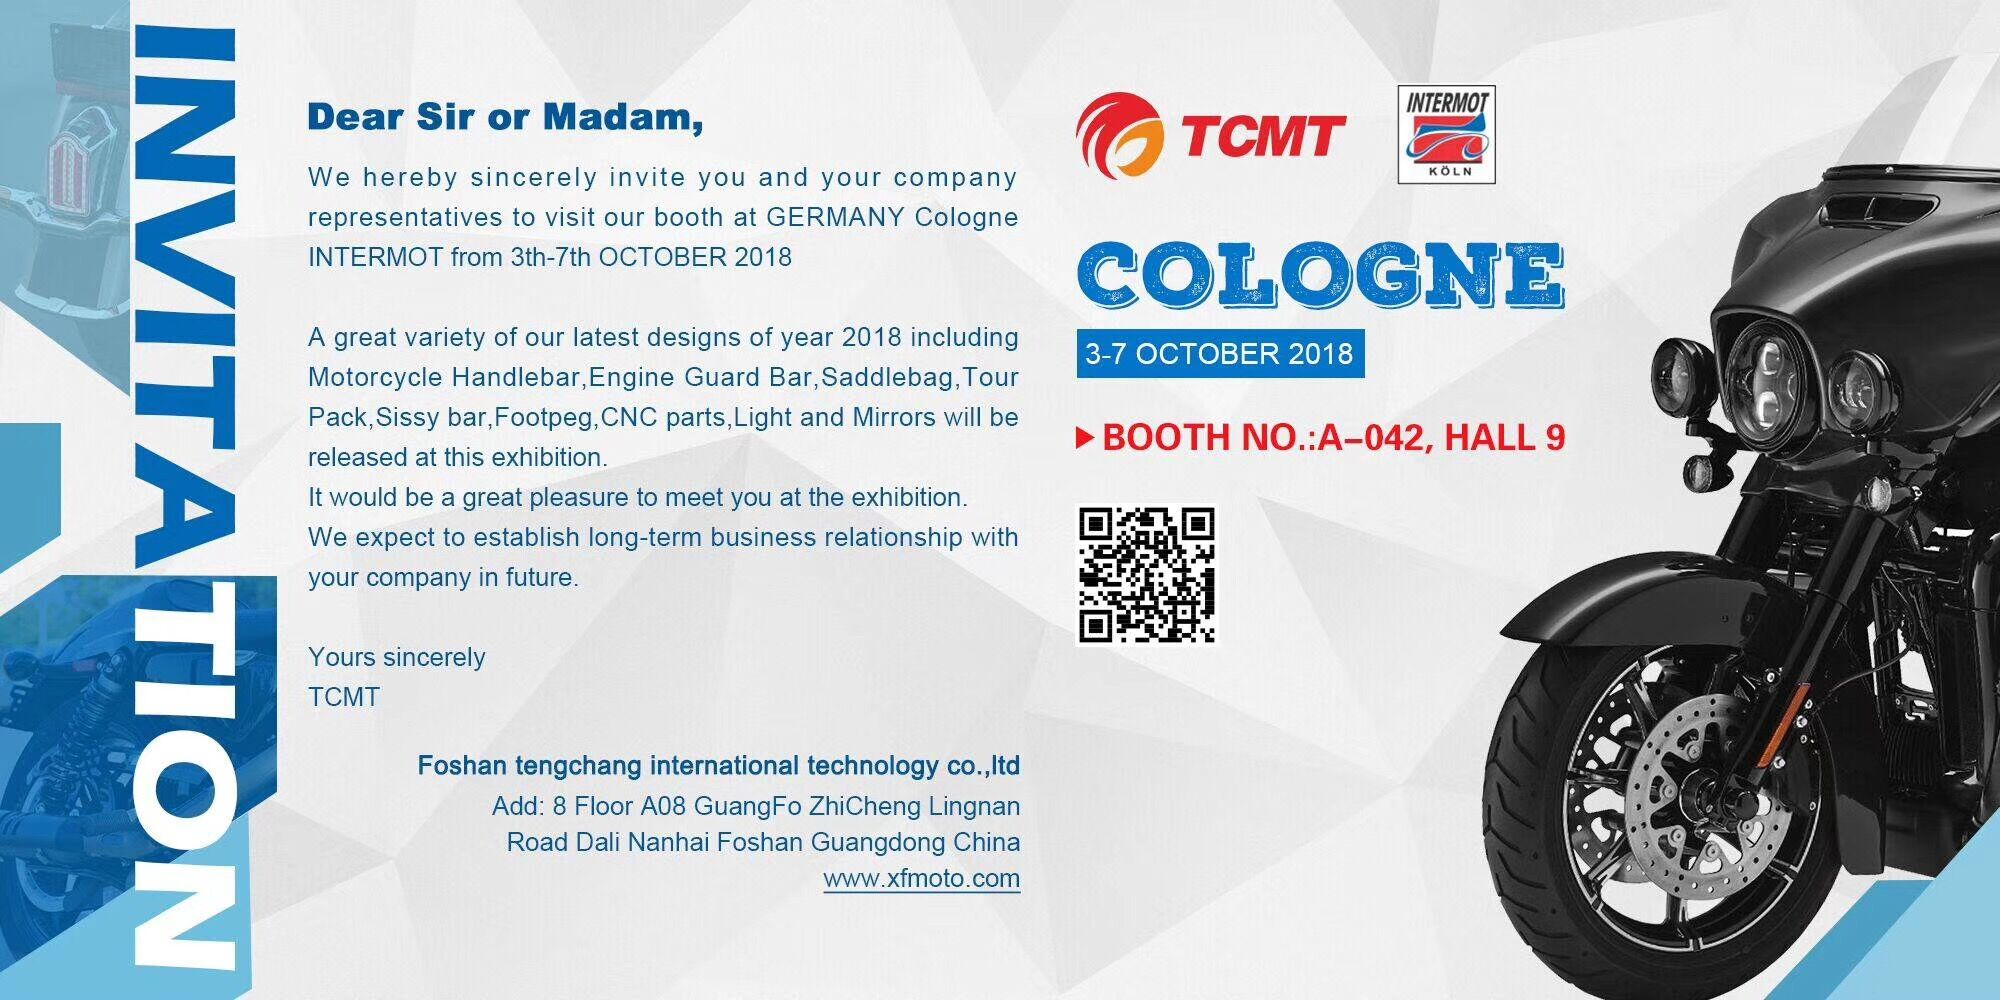 TCMT INTERMOT MOTORCYCLE PARTS EXHIBITION IN COLOGNE 2018